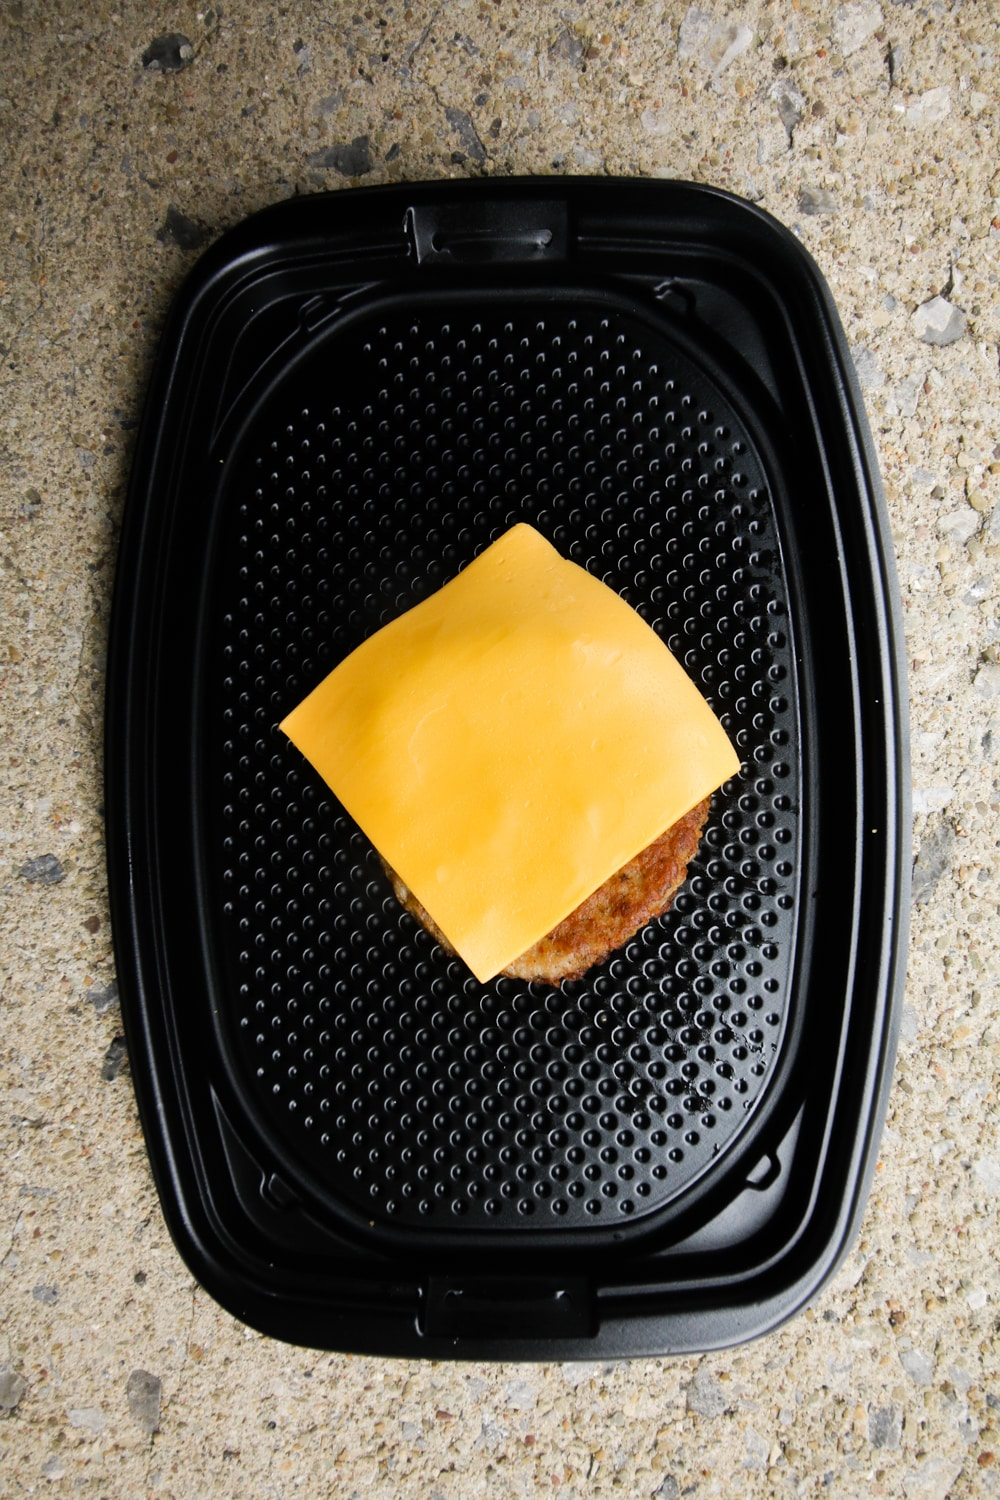 A piece of sausage topped with cheese on a black take-out container.